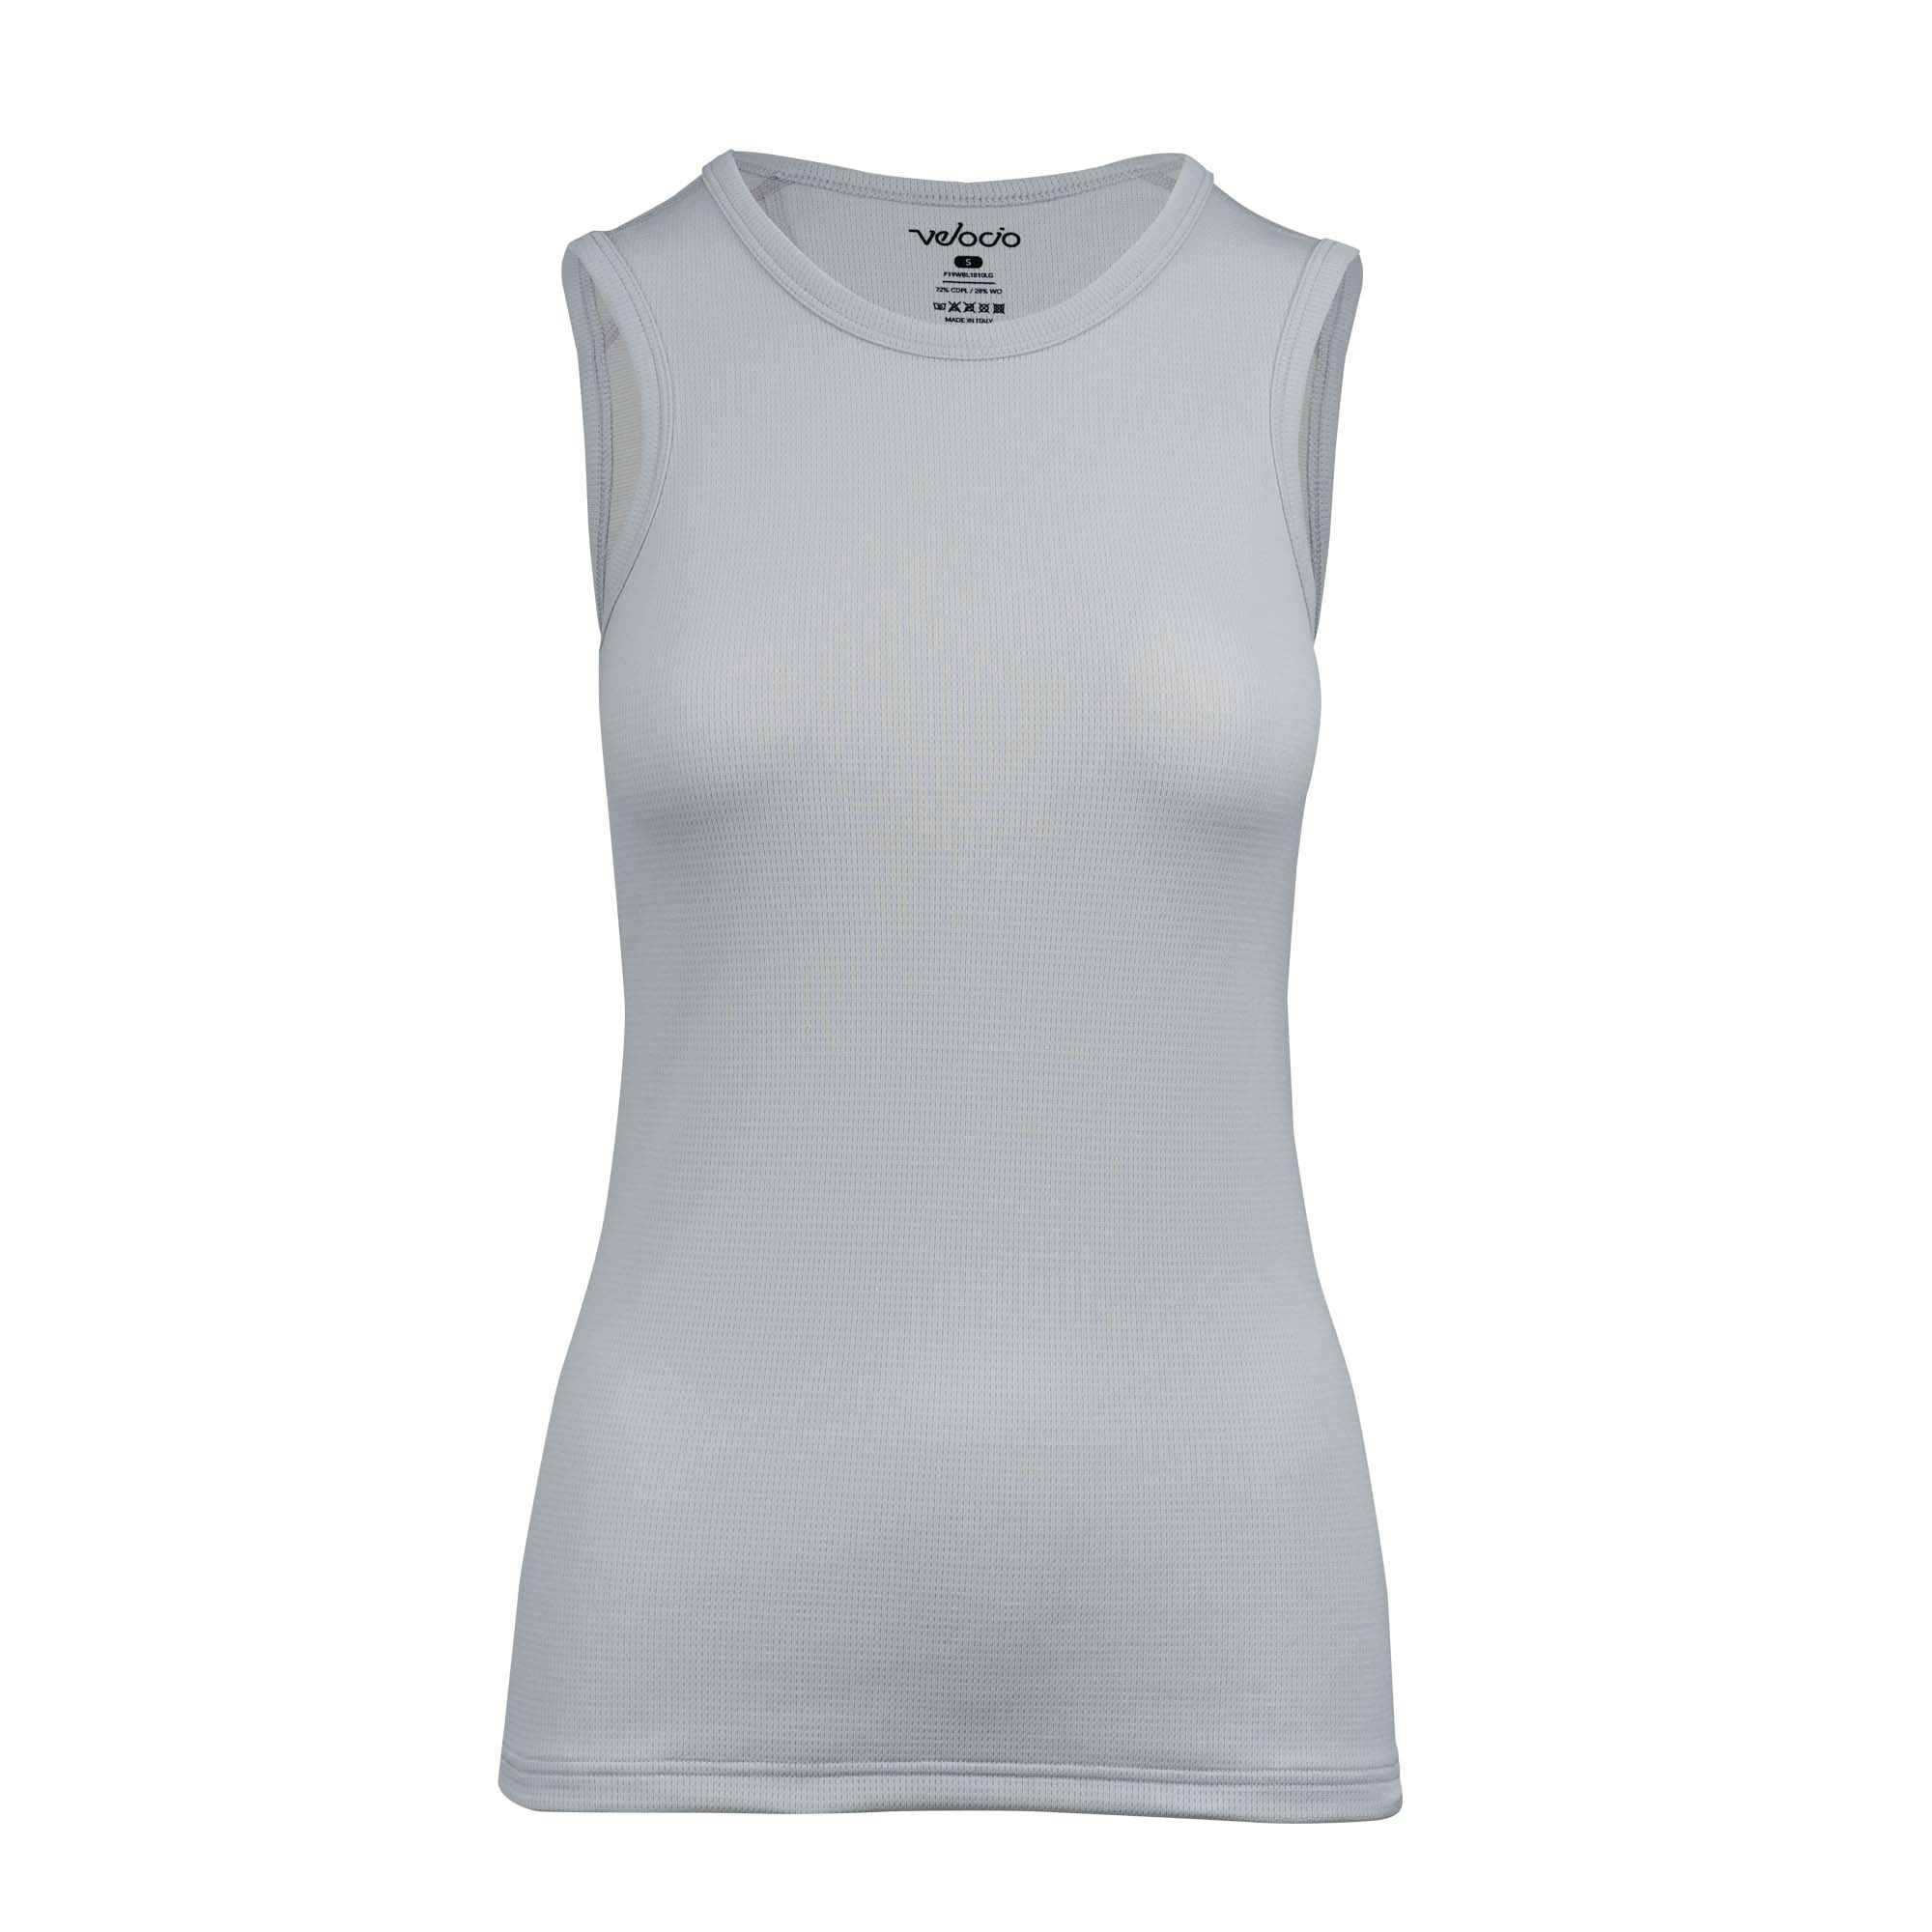 Women's Merino 160 SL Base Layer